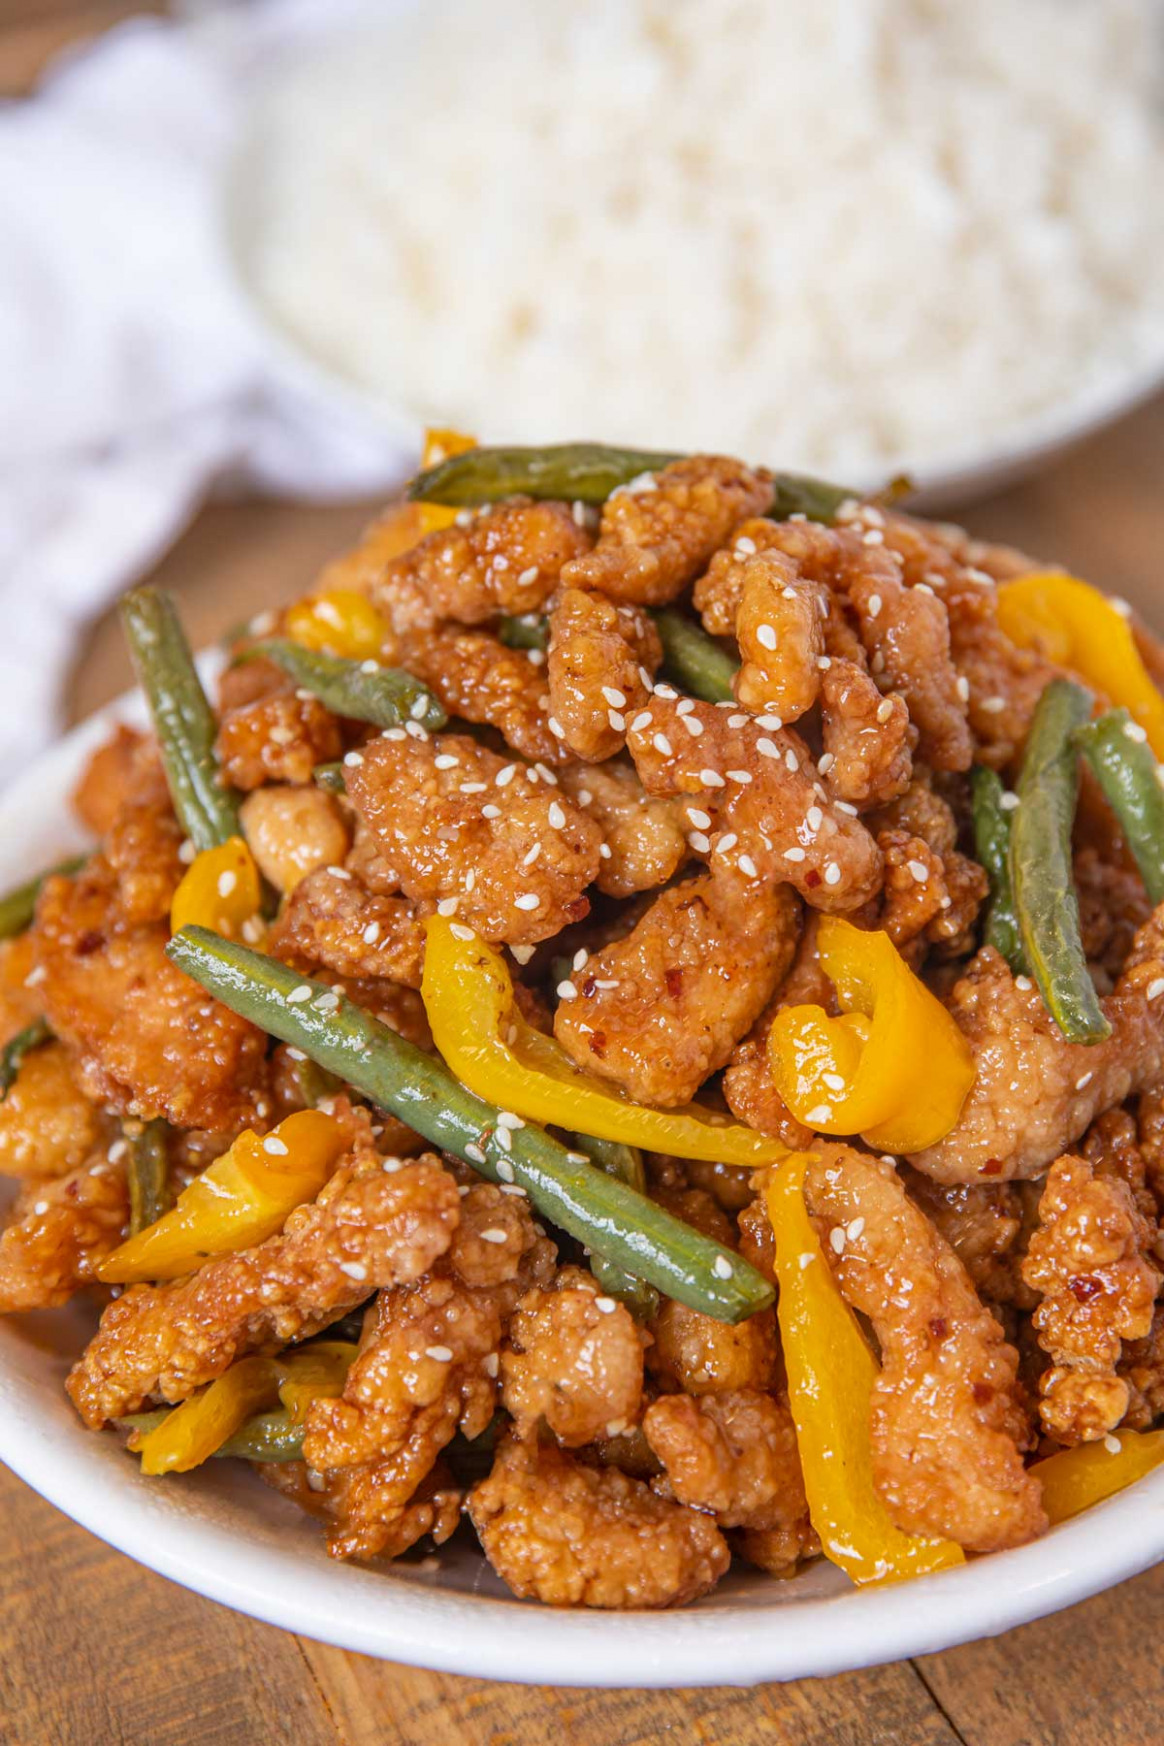 Panda Express Honey Sesame Chicken Breast (Copycat) - Dinner Recipes Chicken Breast